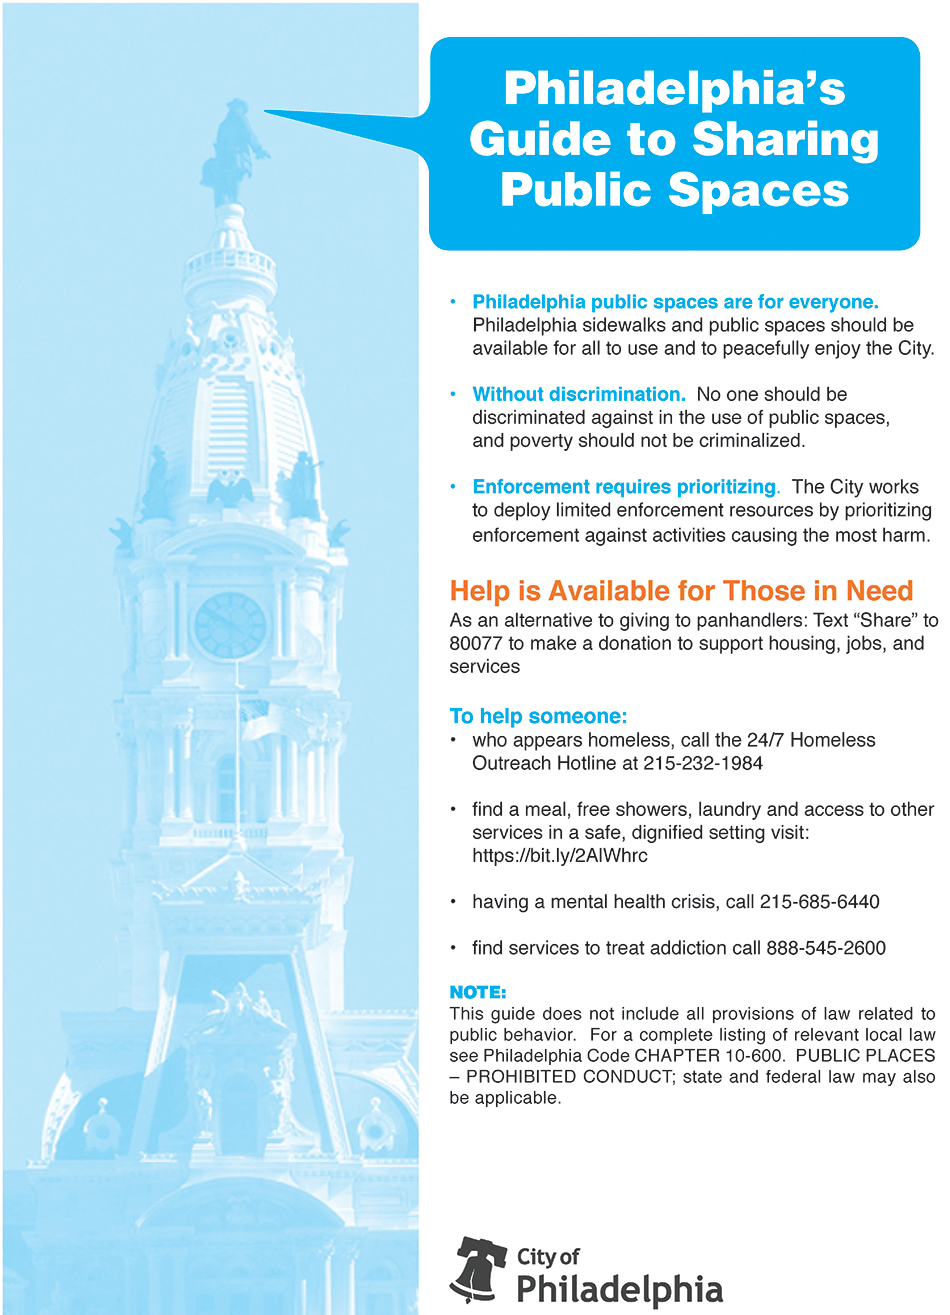 Guide to Sharing Public Space flier